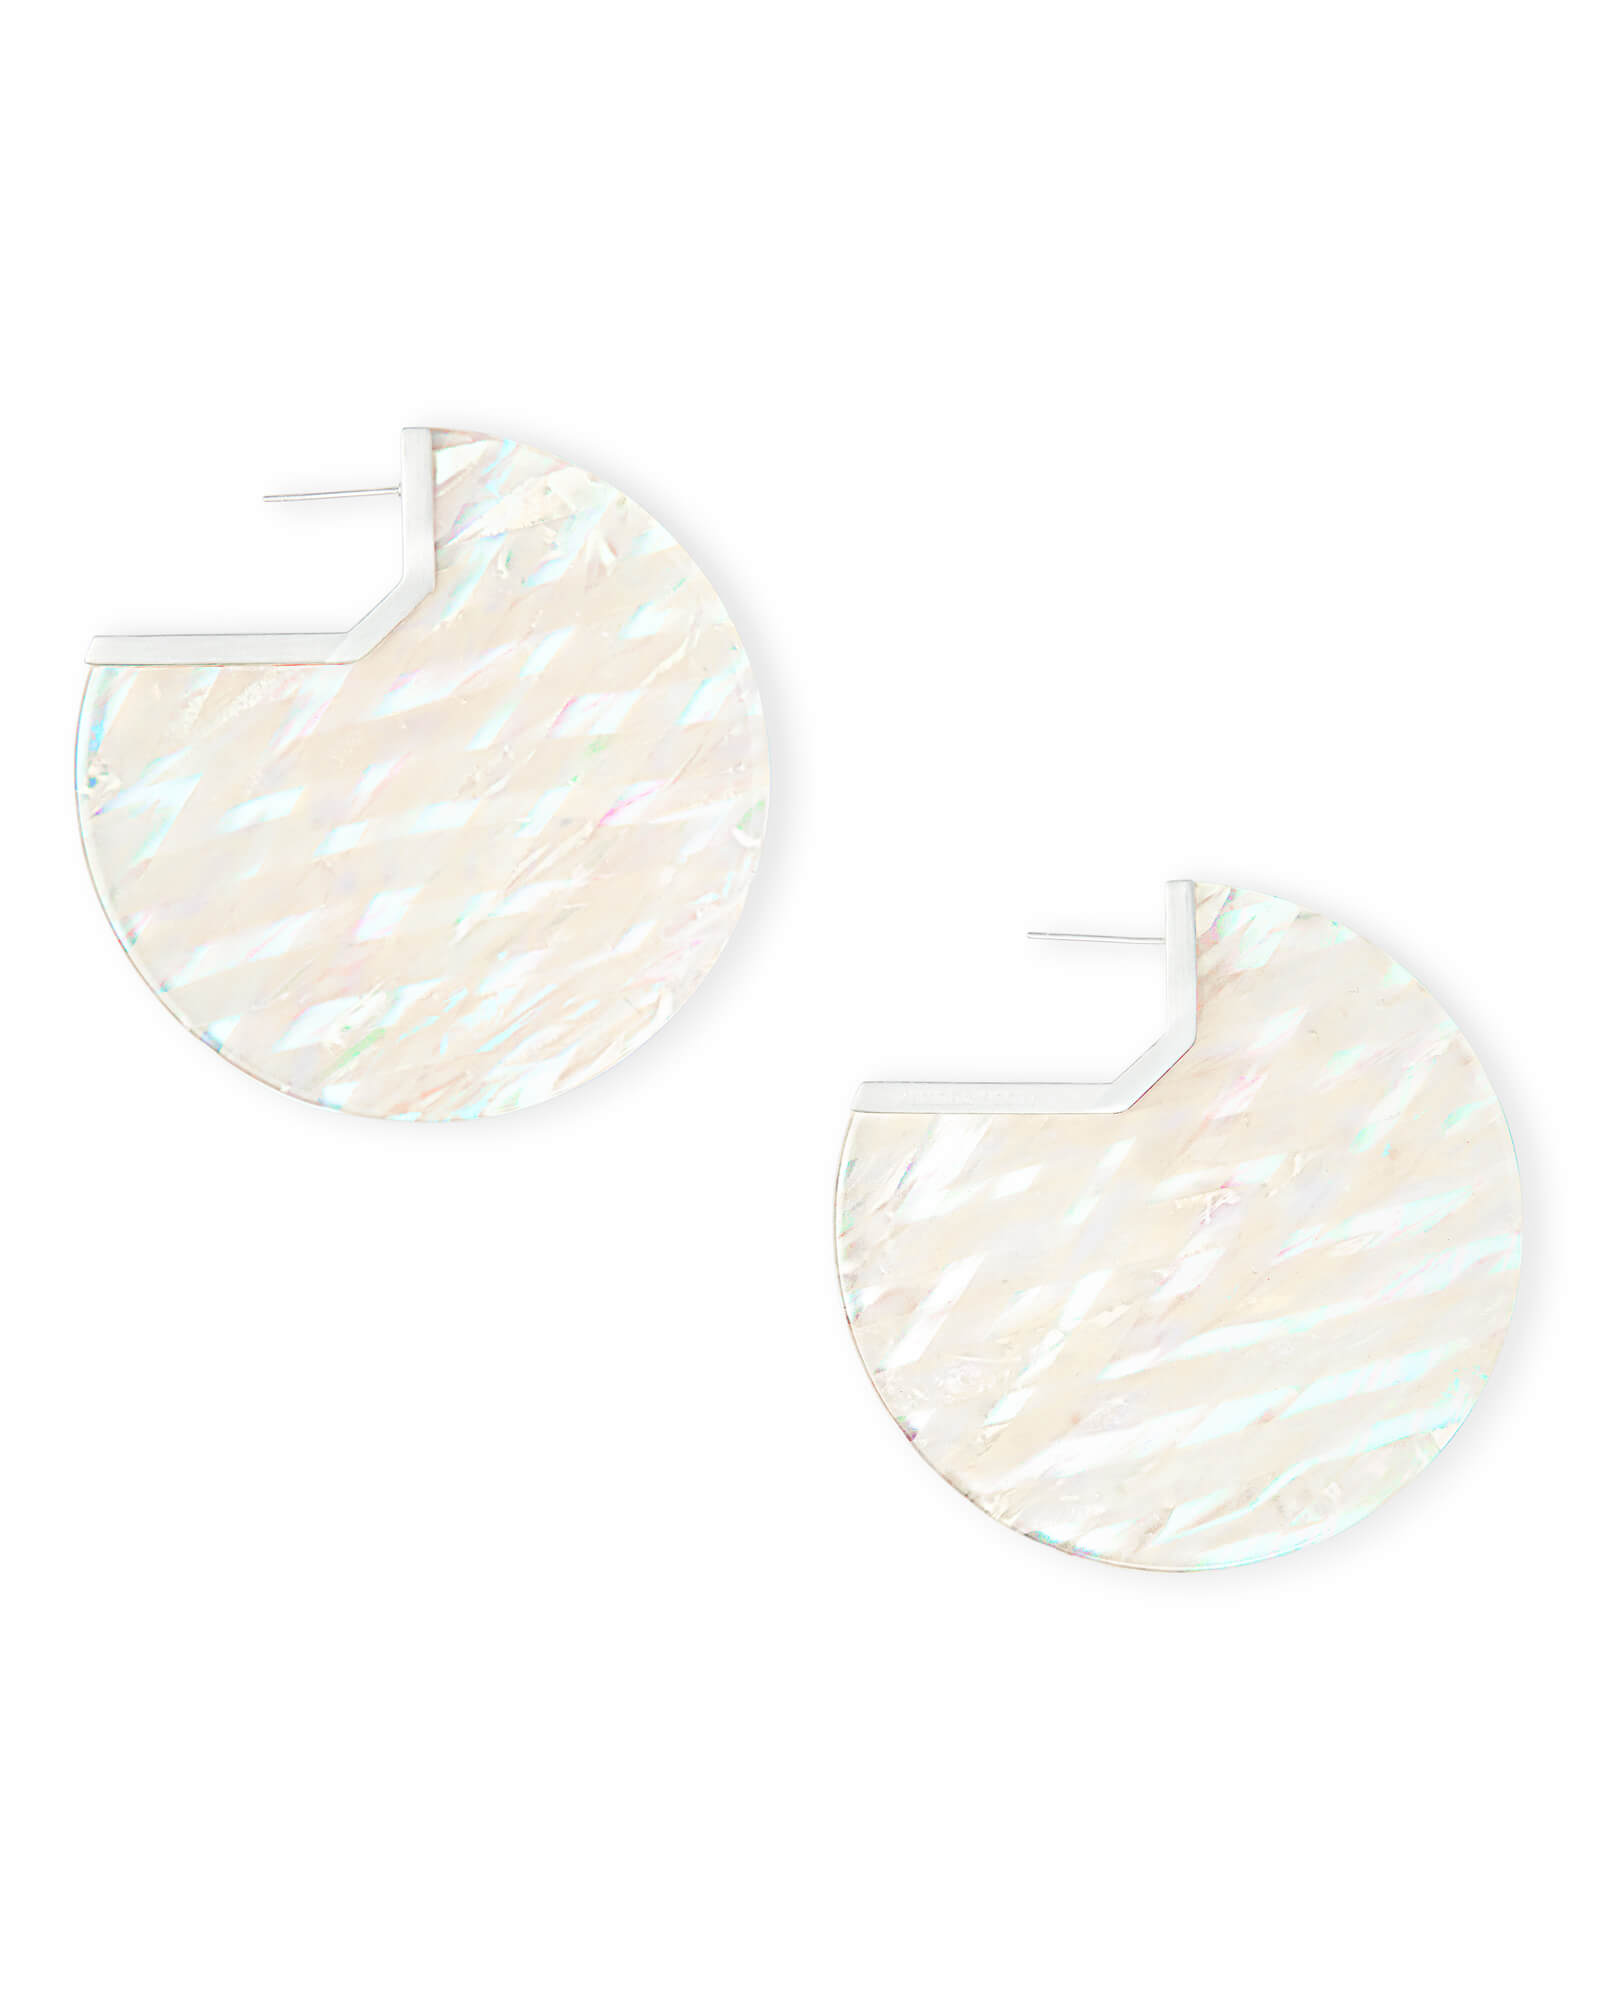 Kai Bright Silver Hoop Earrings in Iridescent Acetate